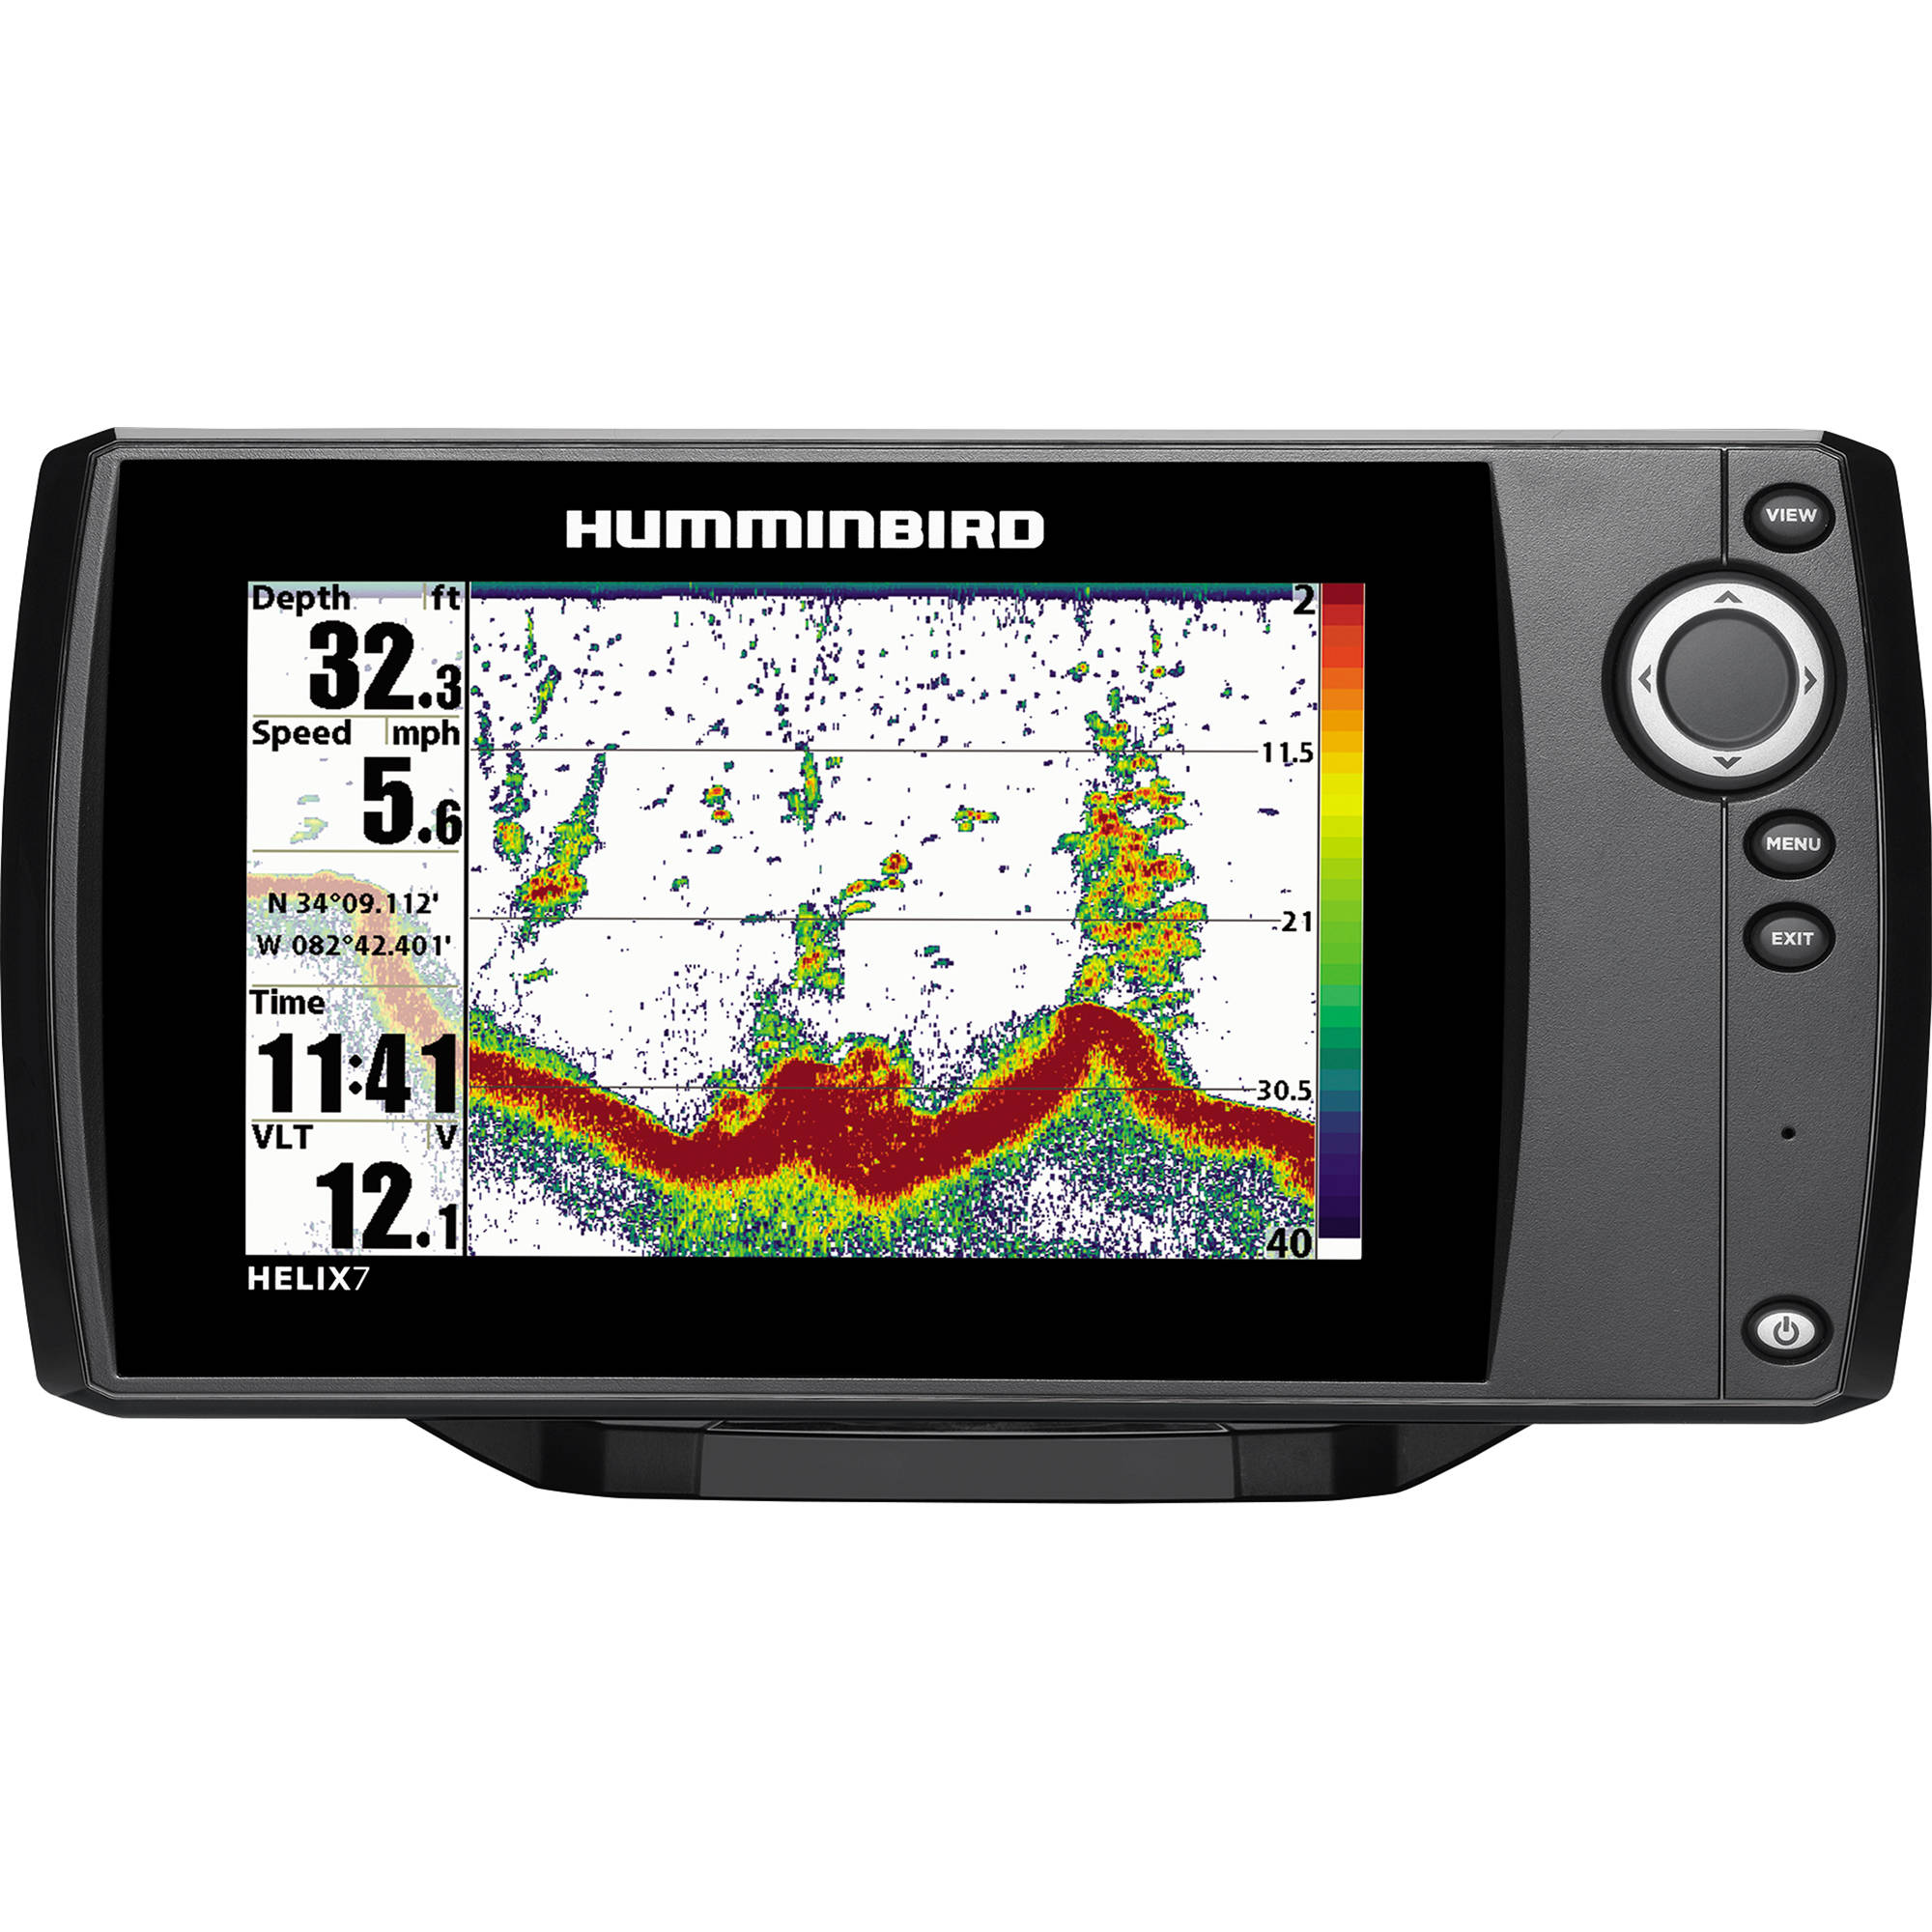 humminbird helix 7 fishfinder 409790-1 b&h photo video, Fish Finder